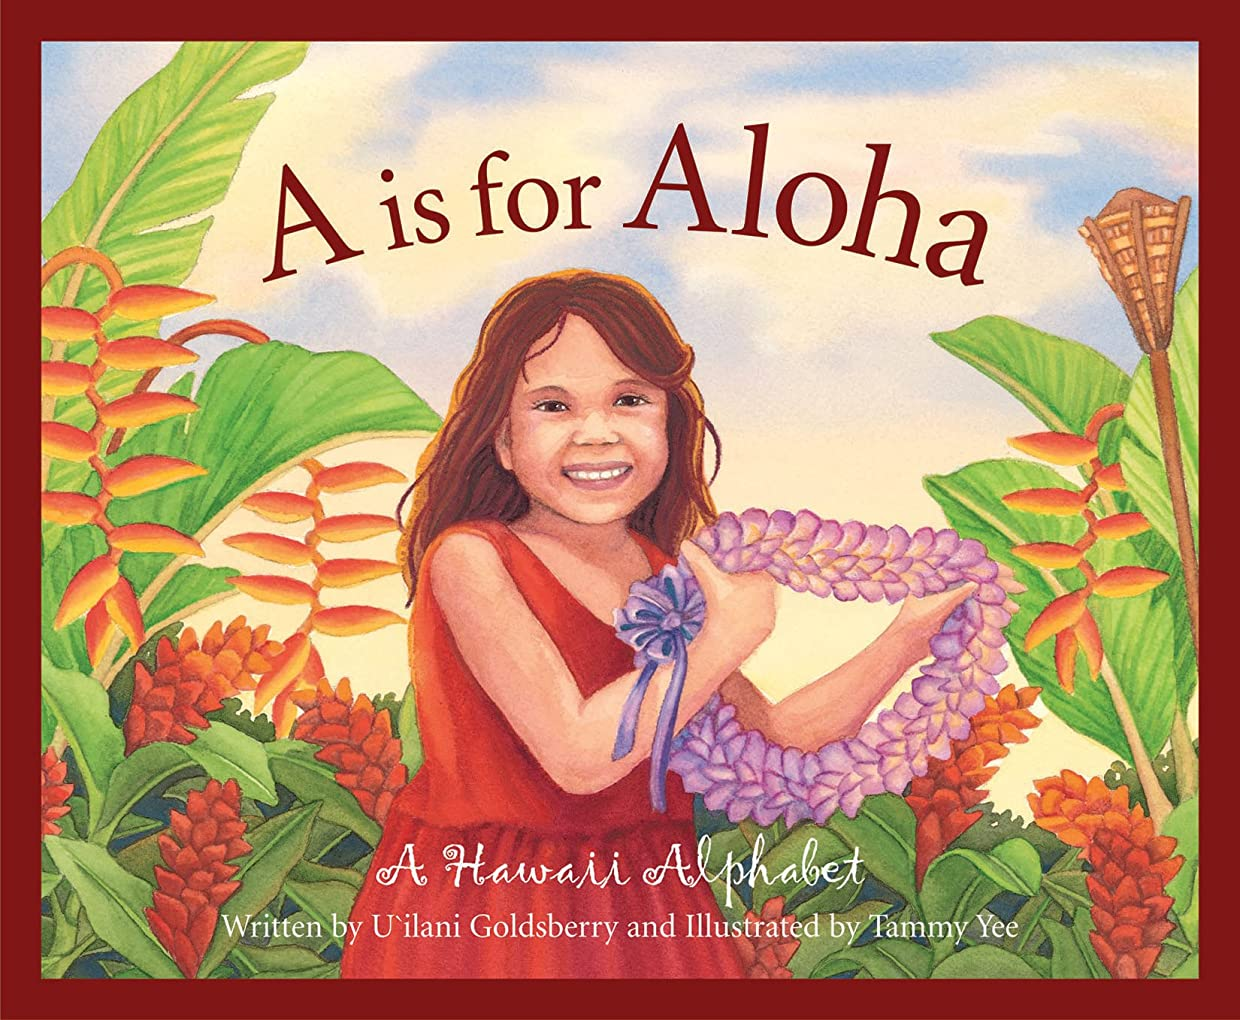 破壊する放棄良心的A is for Aloha: A Hawai'i Alphabet (Discover America State by State) (English Edition)